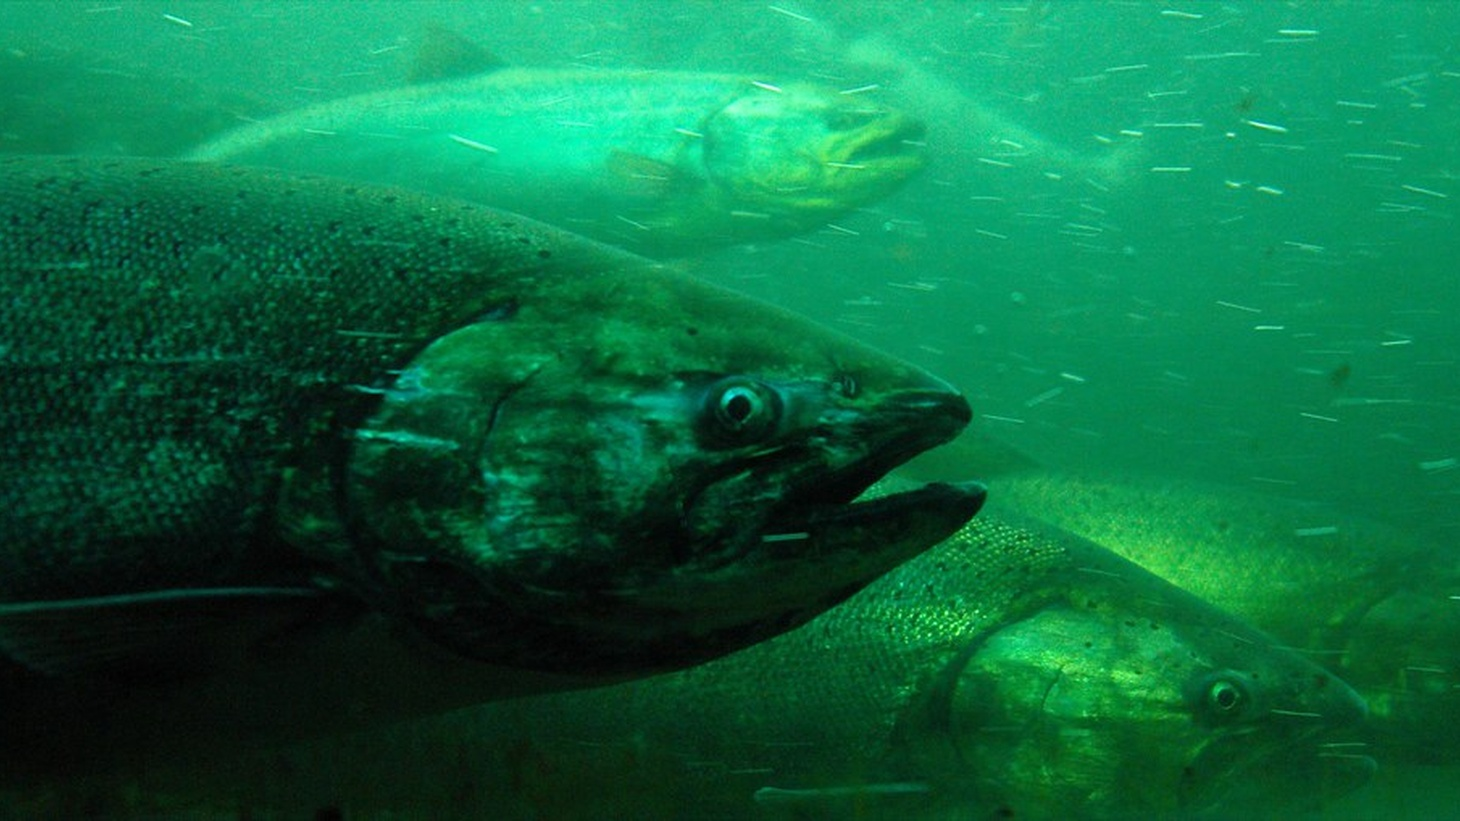 Chinook salmon in the fish ladder at the Hiram M Chittenden Locks.